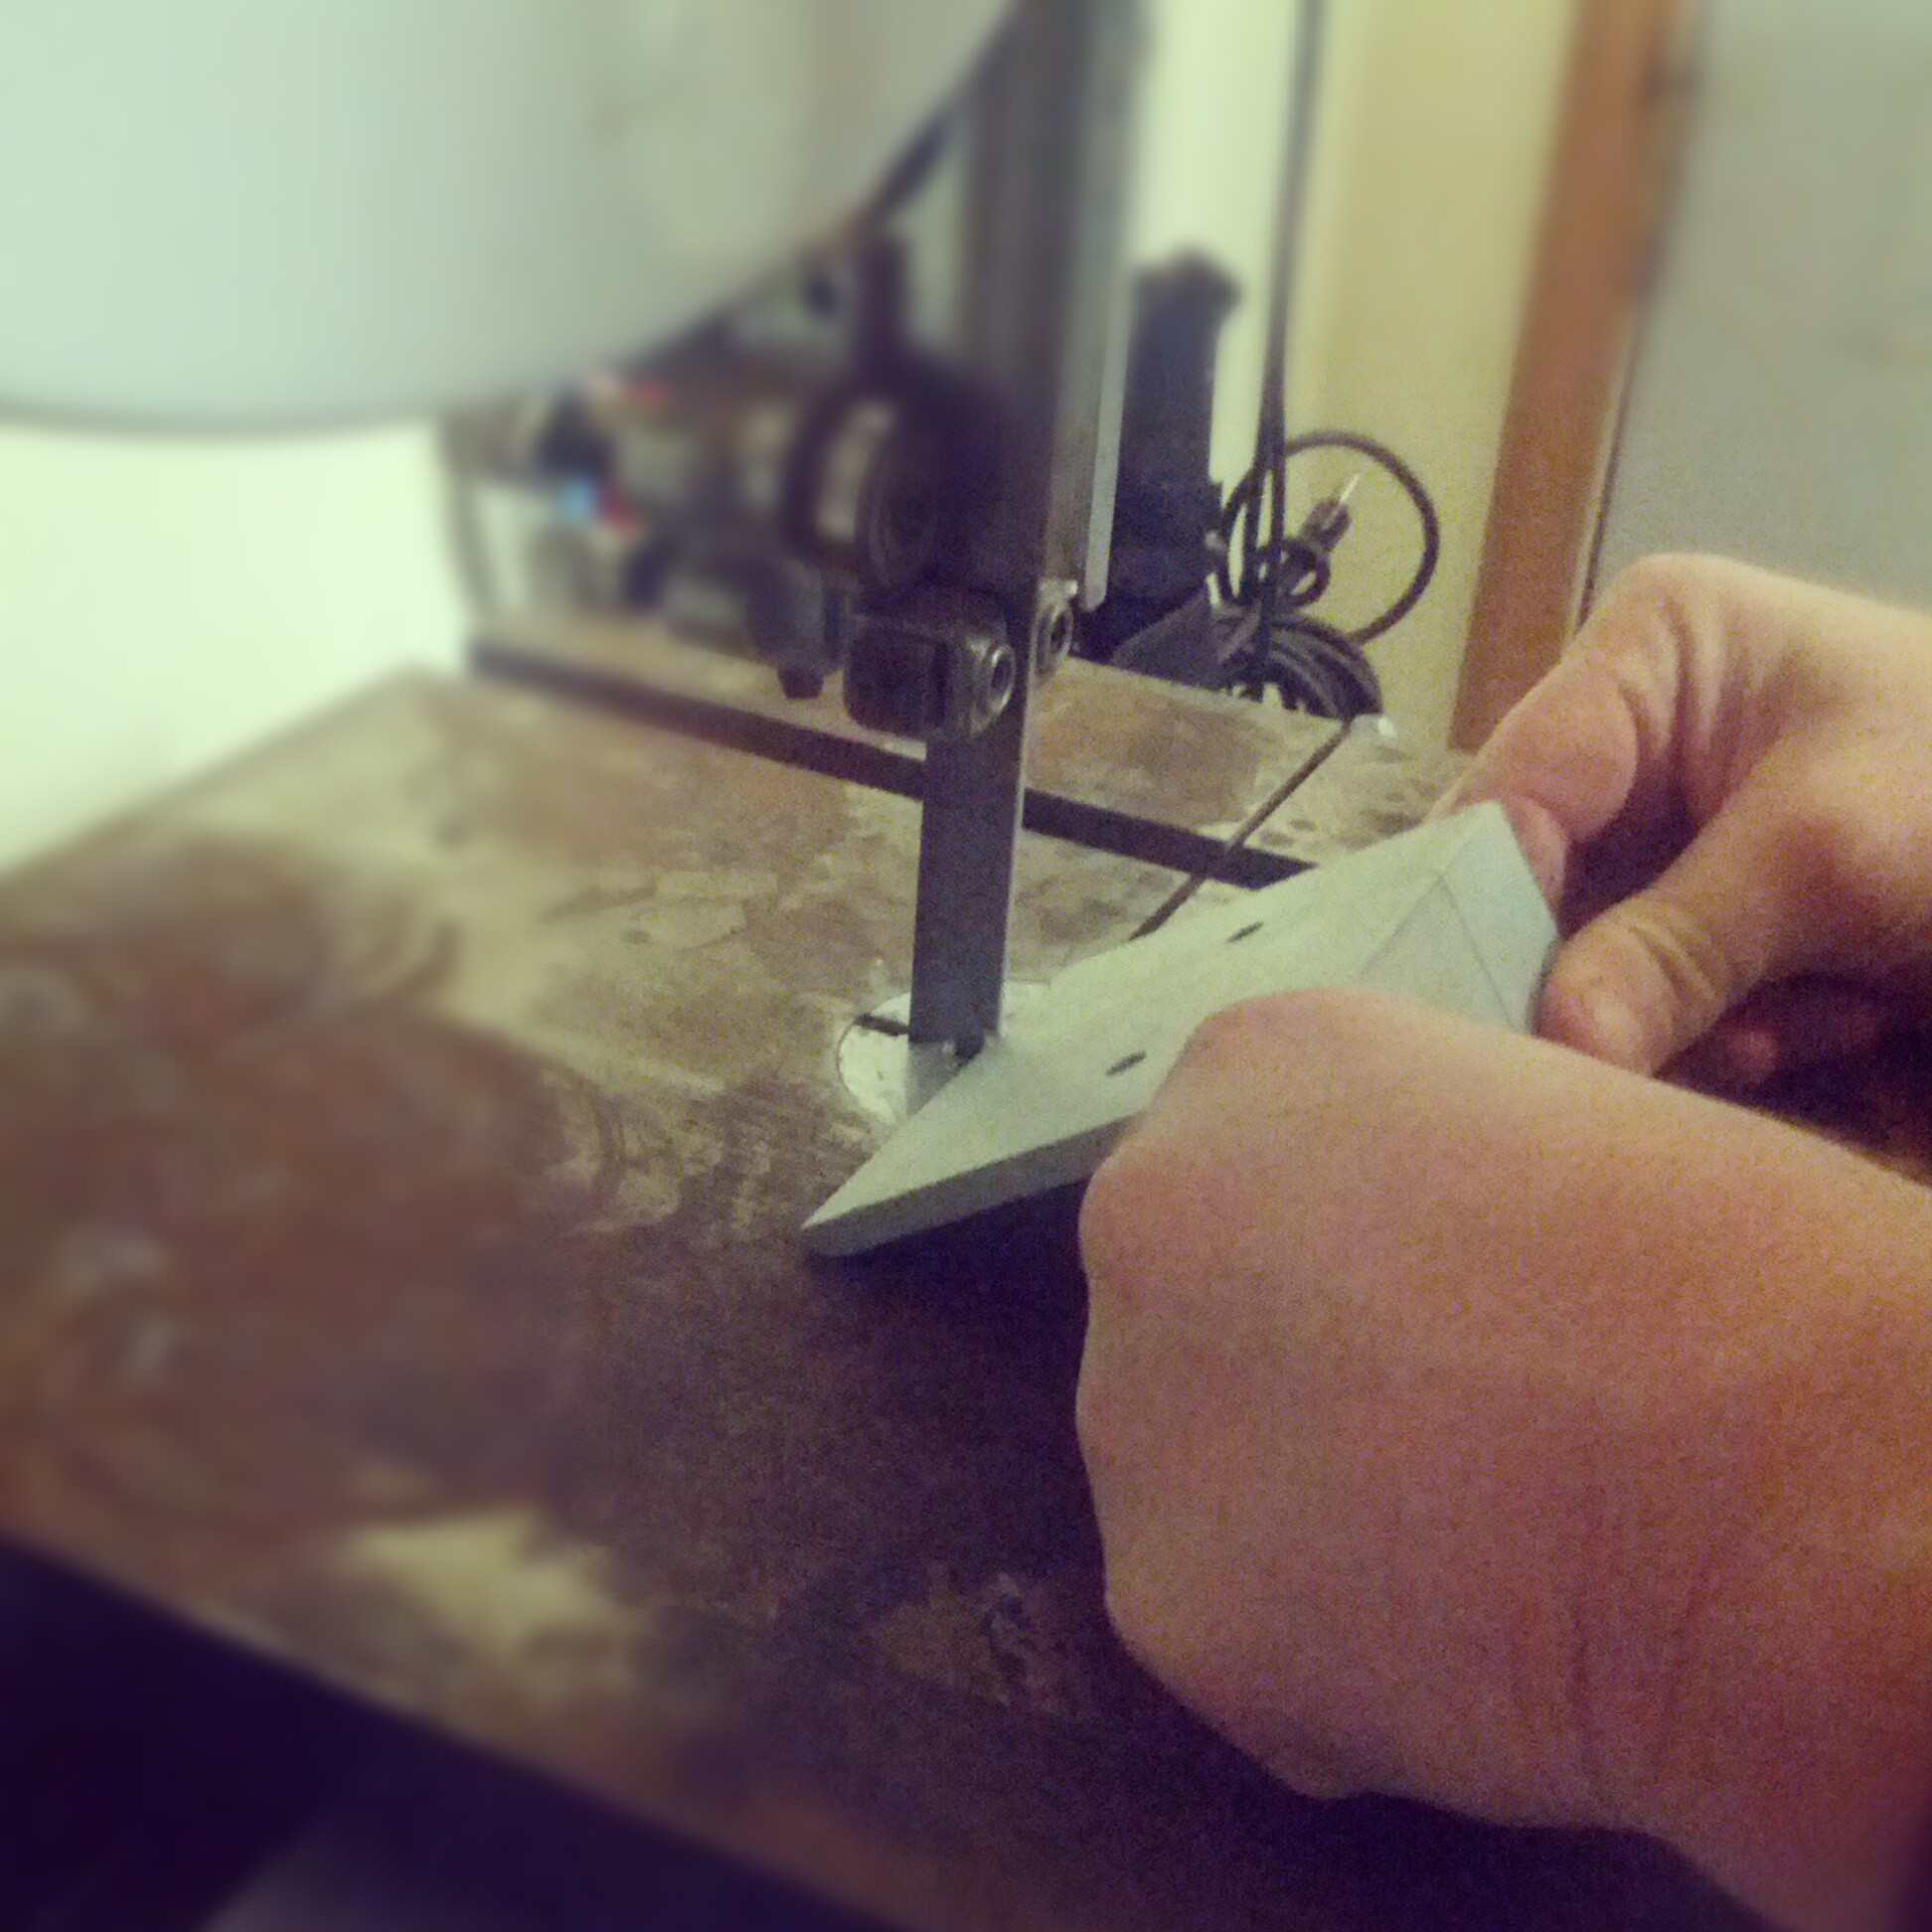 Cutting the angle iron sections